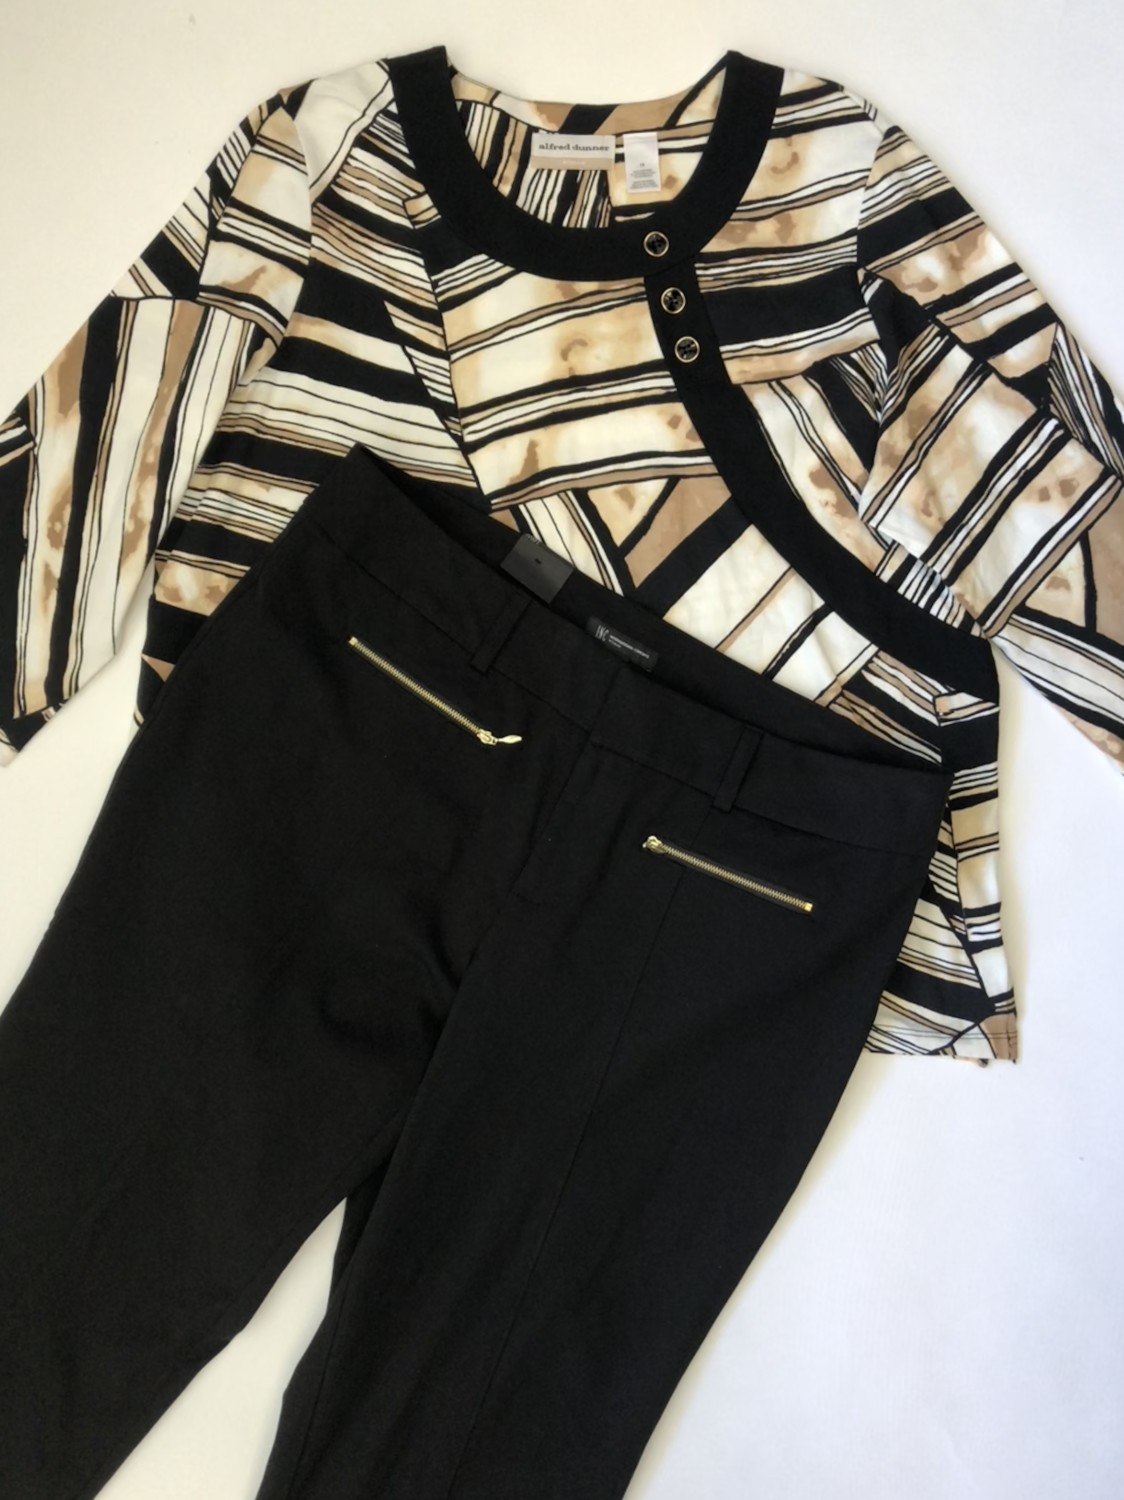 Alfred Dunner Top, INC Pants – Original Retail: $139.50, CWS: $35, Liquidation: $17.50